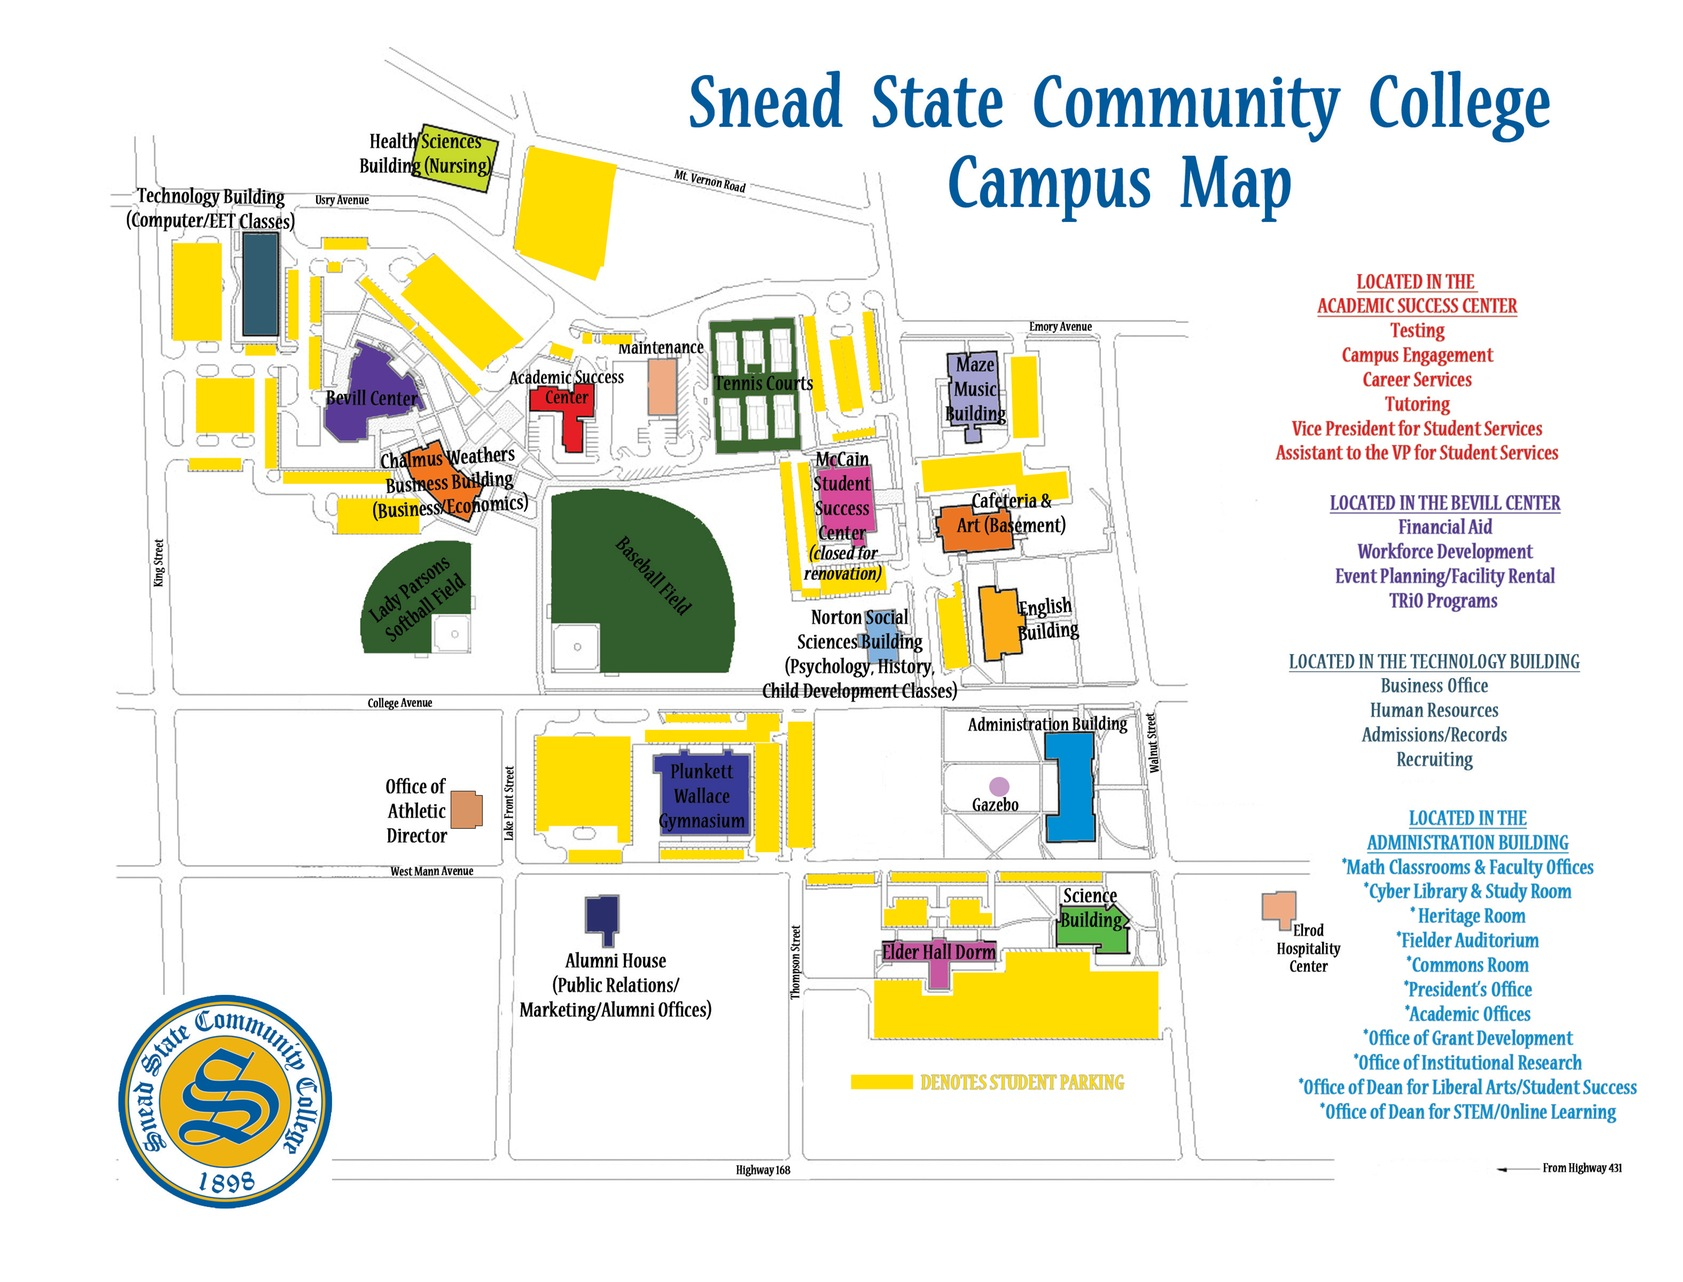 Campus map displaying athletic fields and facilities, along with campus buildings, at Snead State Community College.